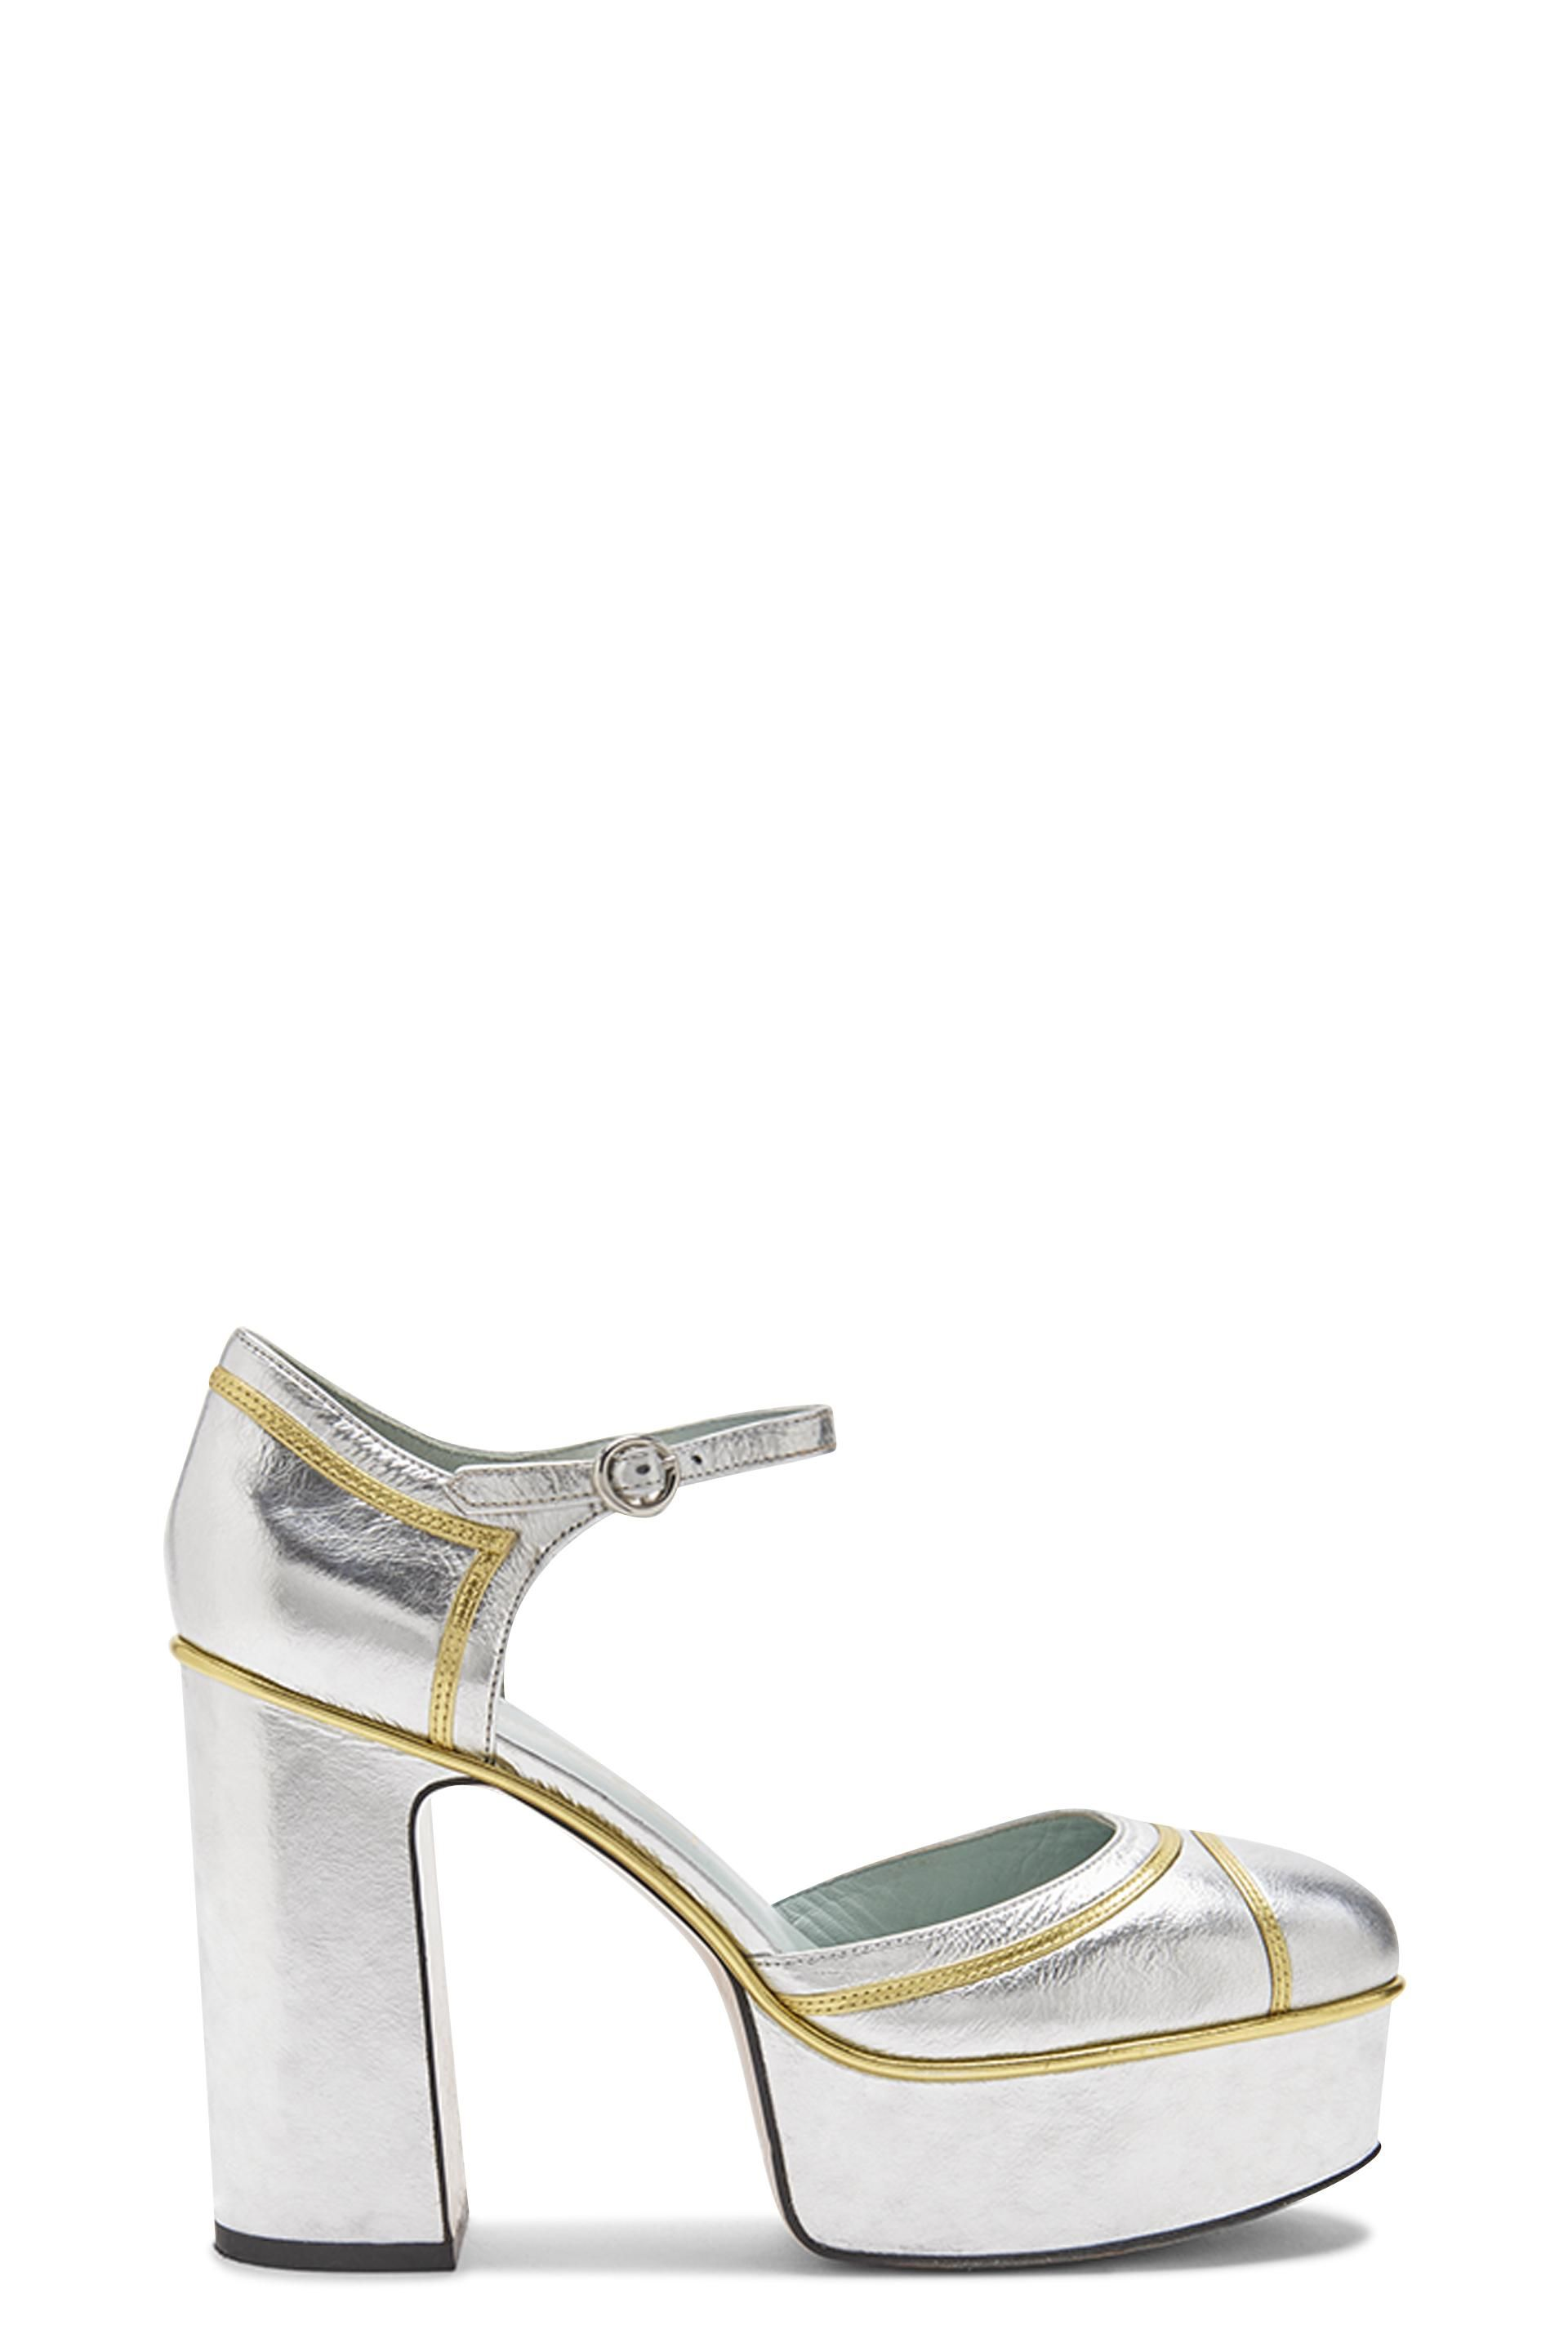 ac689cd9169 The Marc Jacobs Edie Mary Jane Platform Pump is crafted from smooth and  glossy patent goat leather and features an adjustable ankle strap. Heel   110MM ...